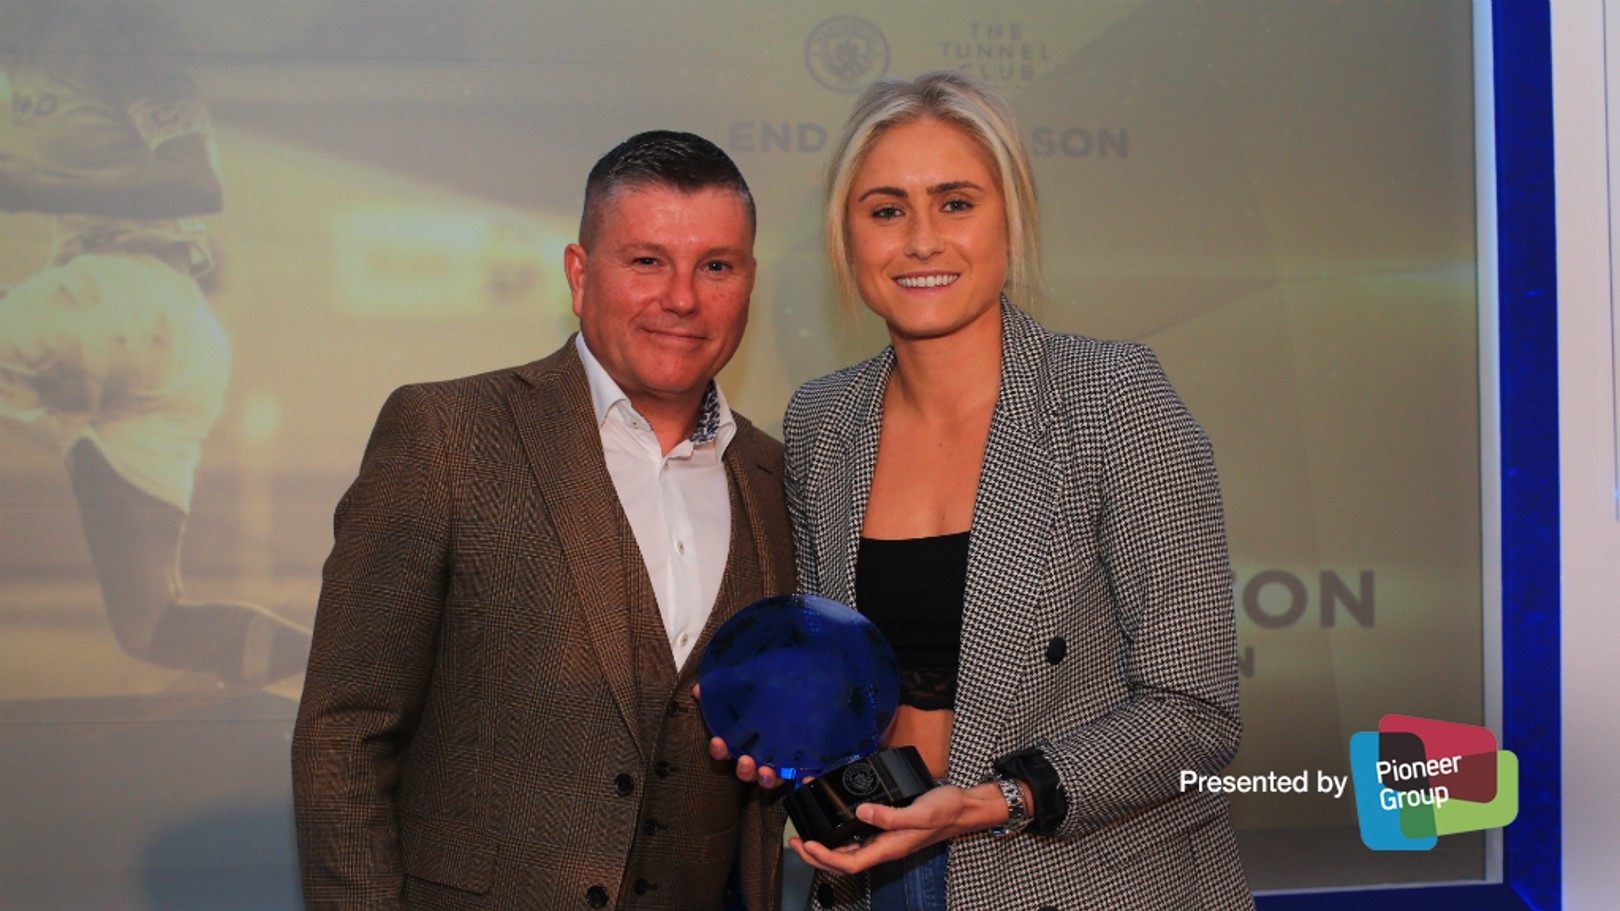 STAR SKIPPER: Steph Houghton was voted by the fans as the Club's Player of the Season